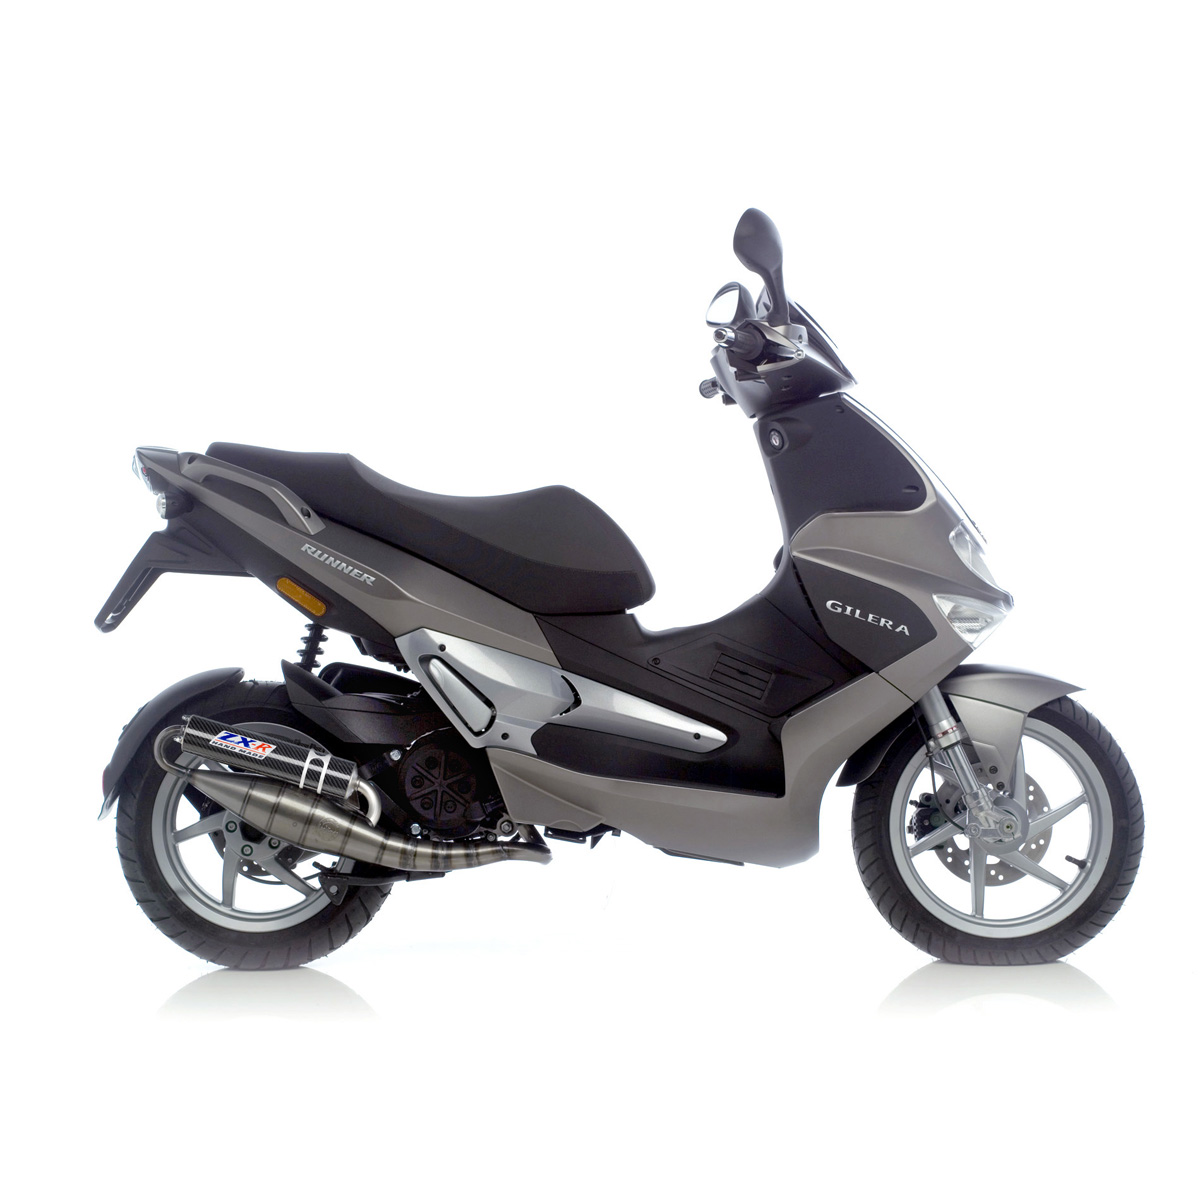 Gilera Runner Pure Jet 2004 images #155939